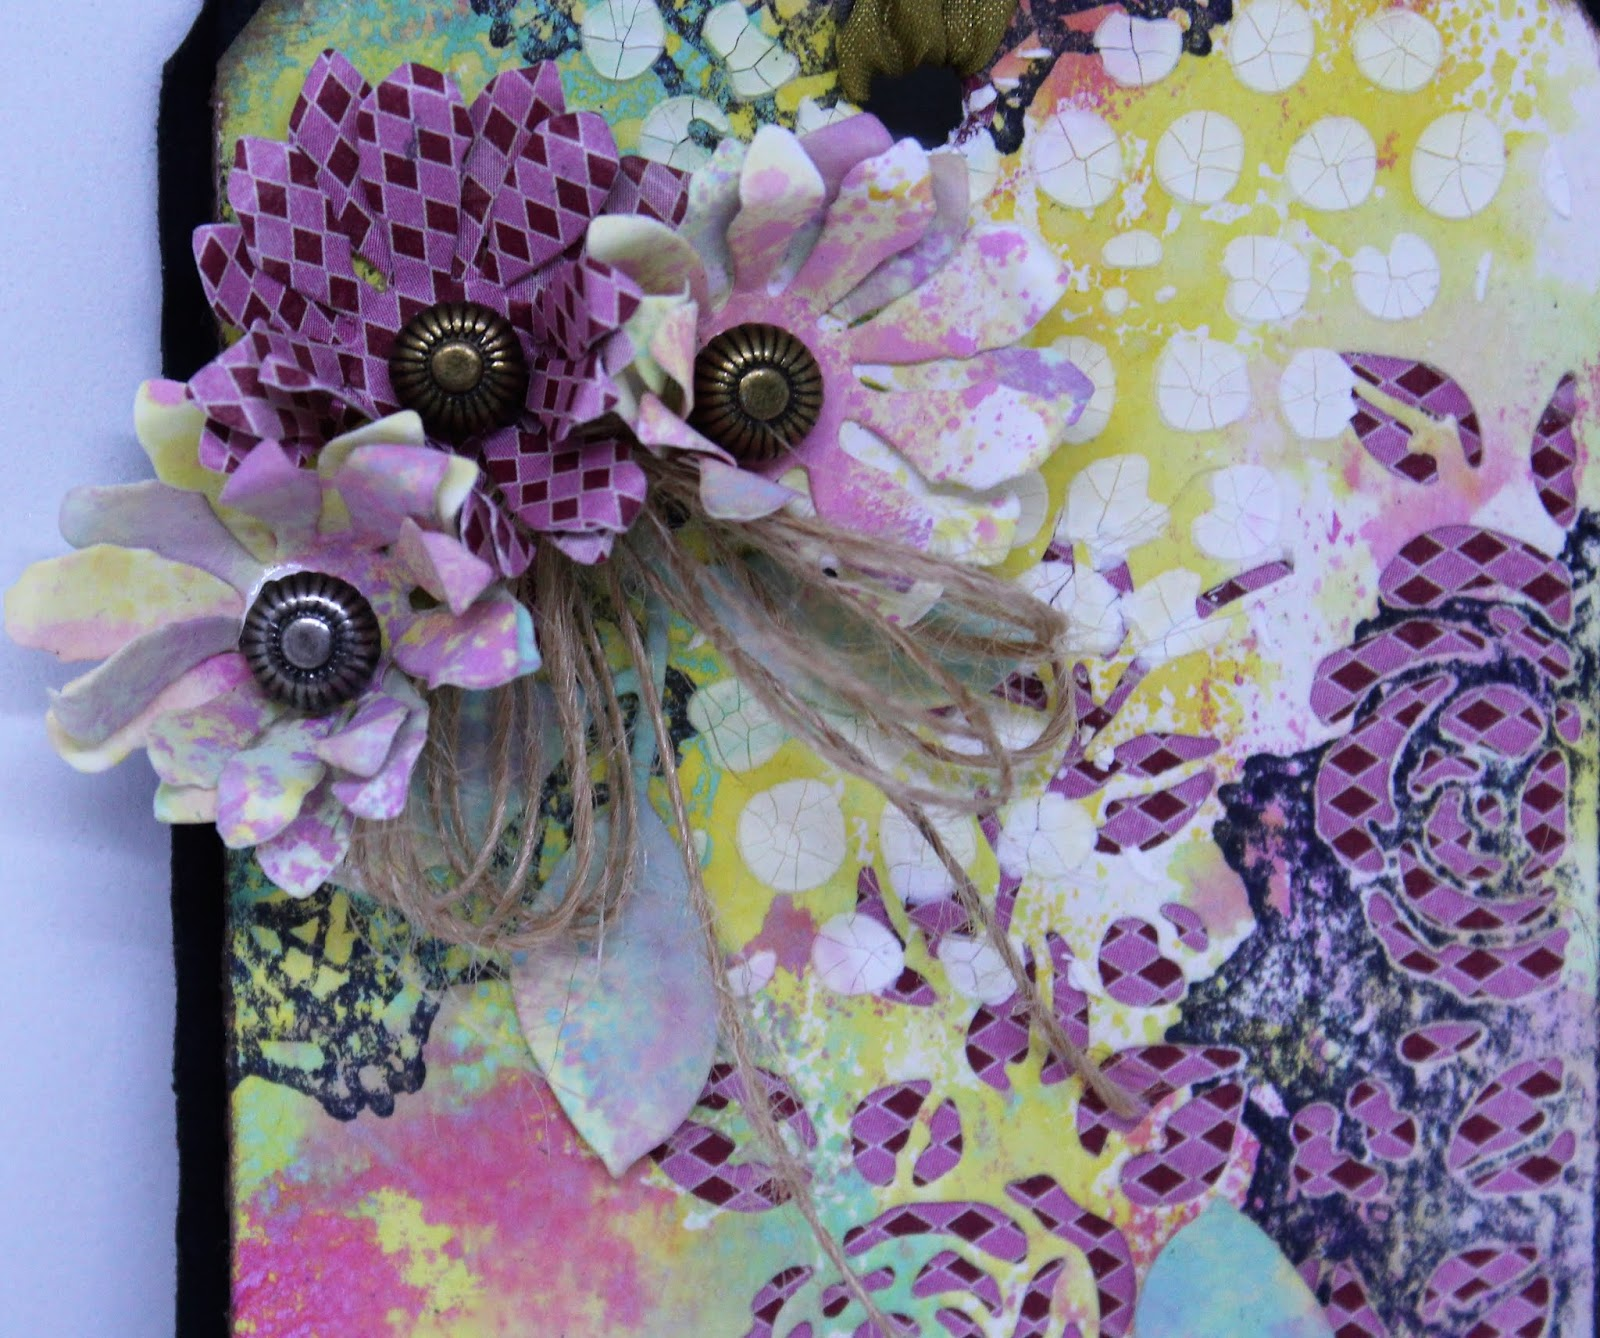 Detailed image of a Sizzix flower die on a mixed media tag